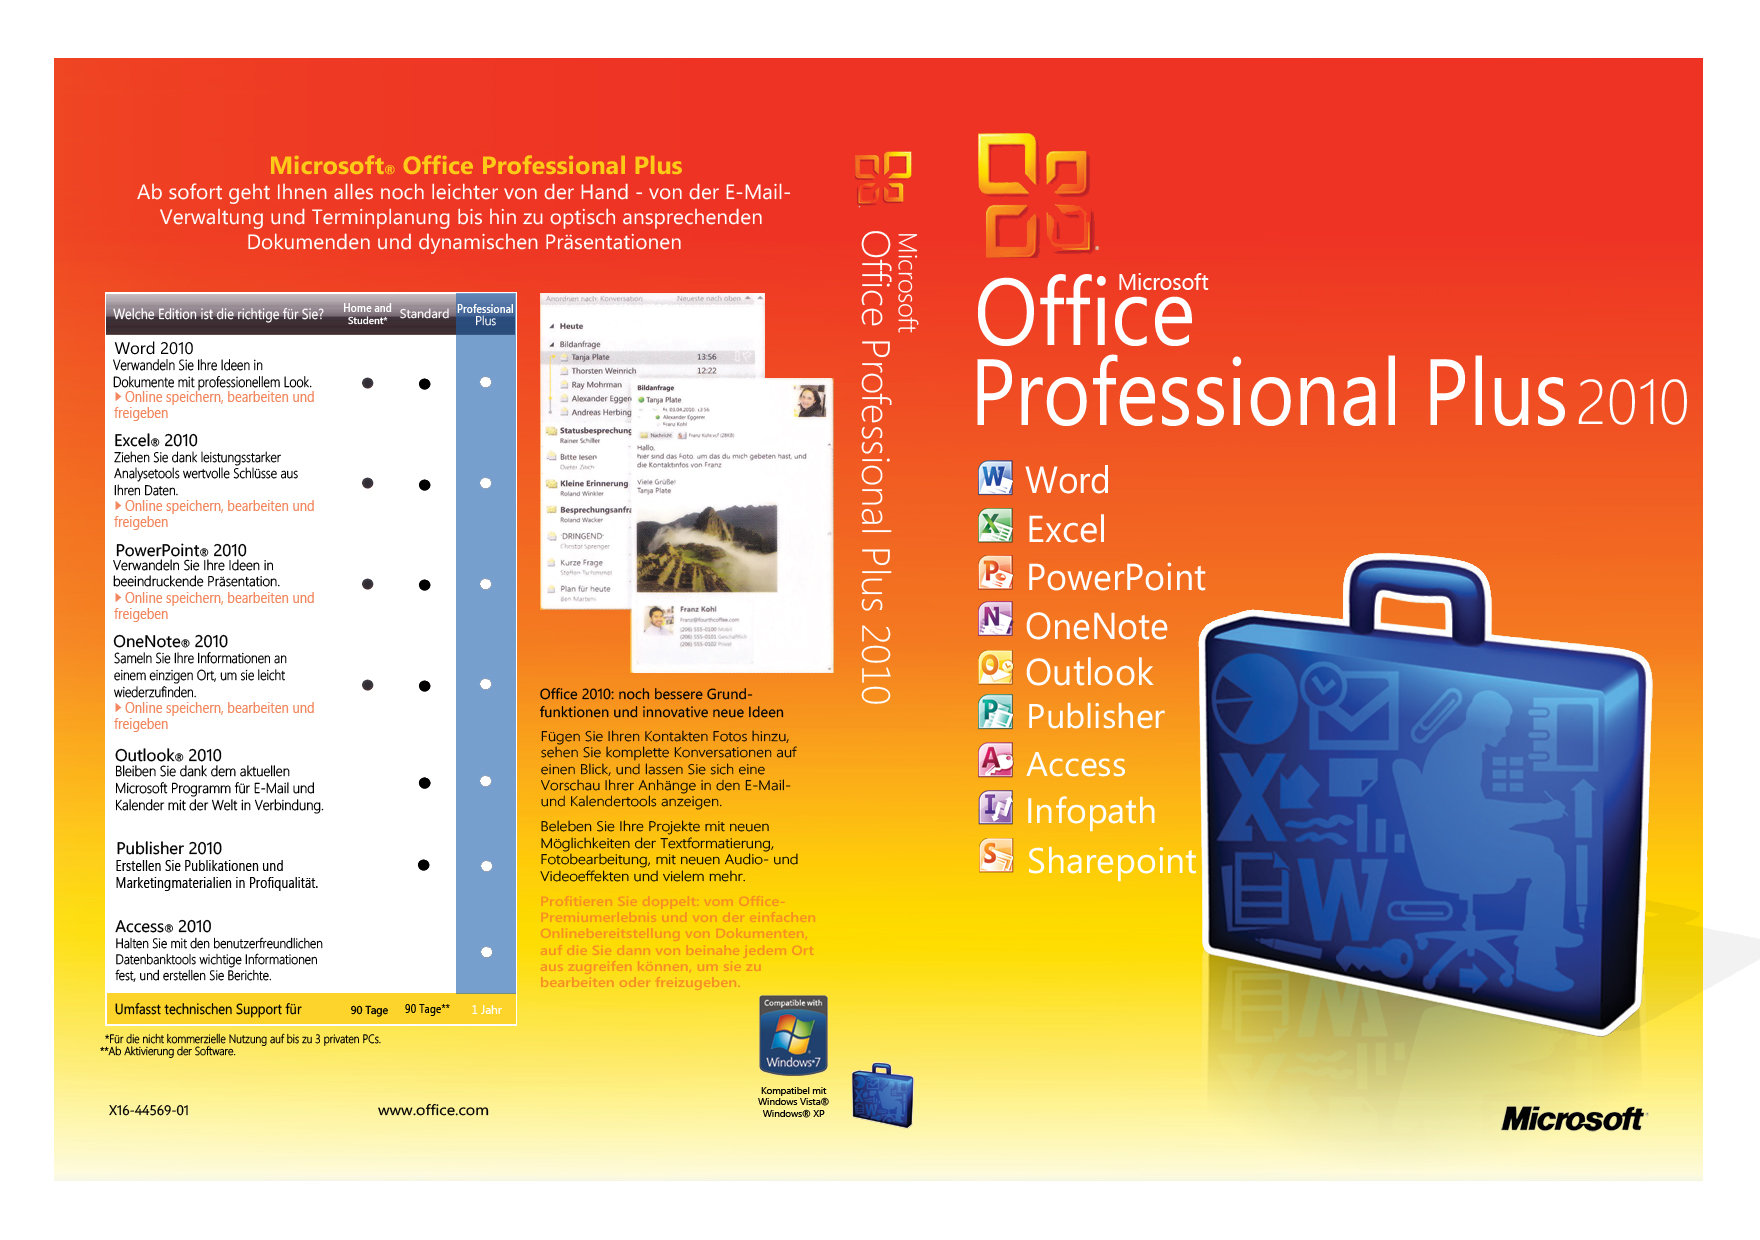 Microsoft office pro plus 2010 rar extractor - Office professional plus 2010 ...